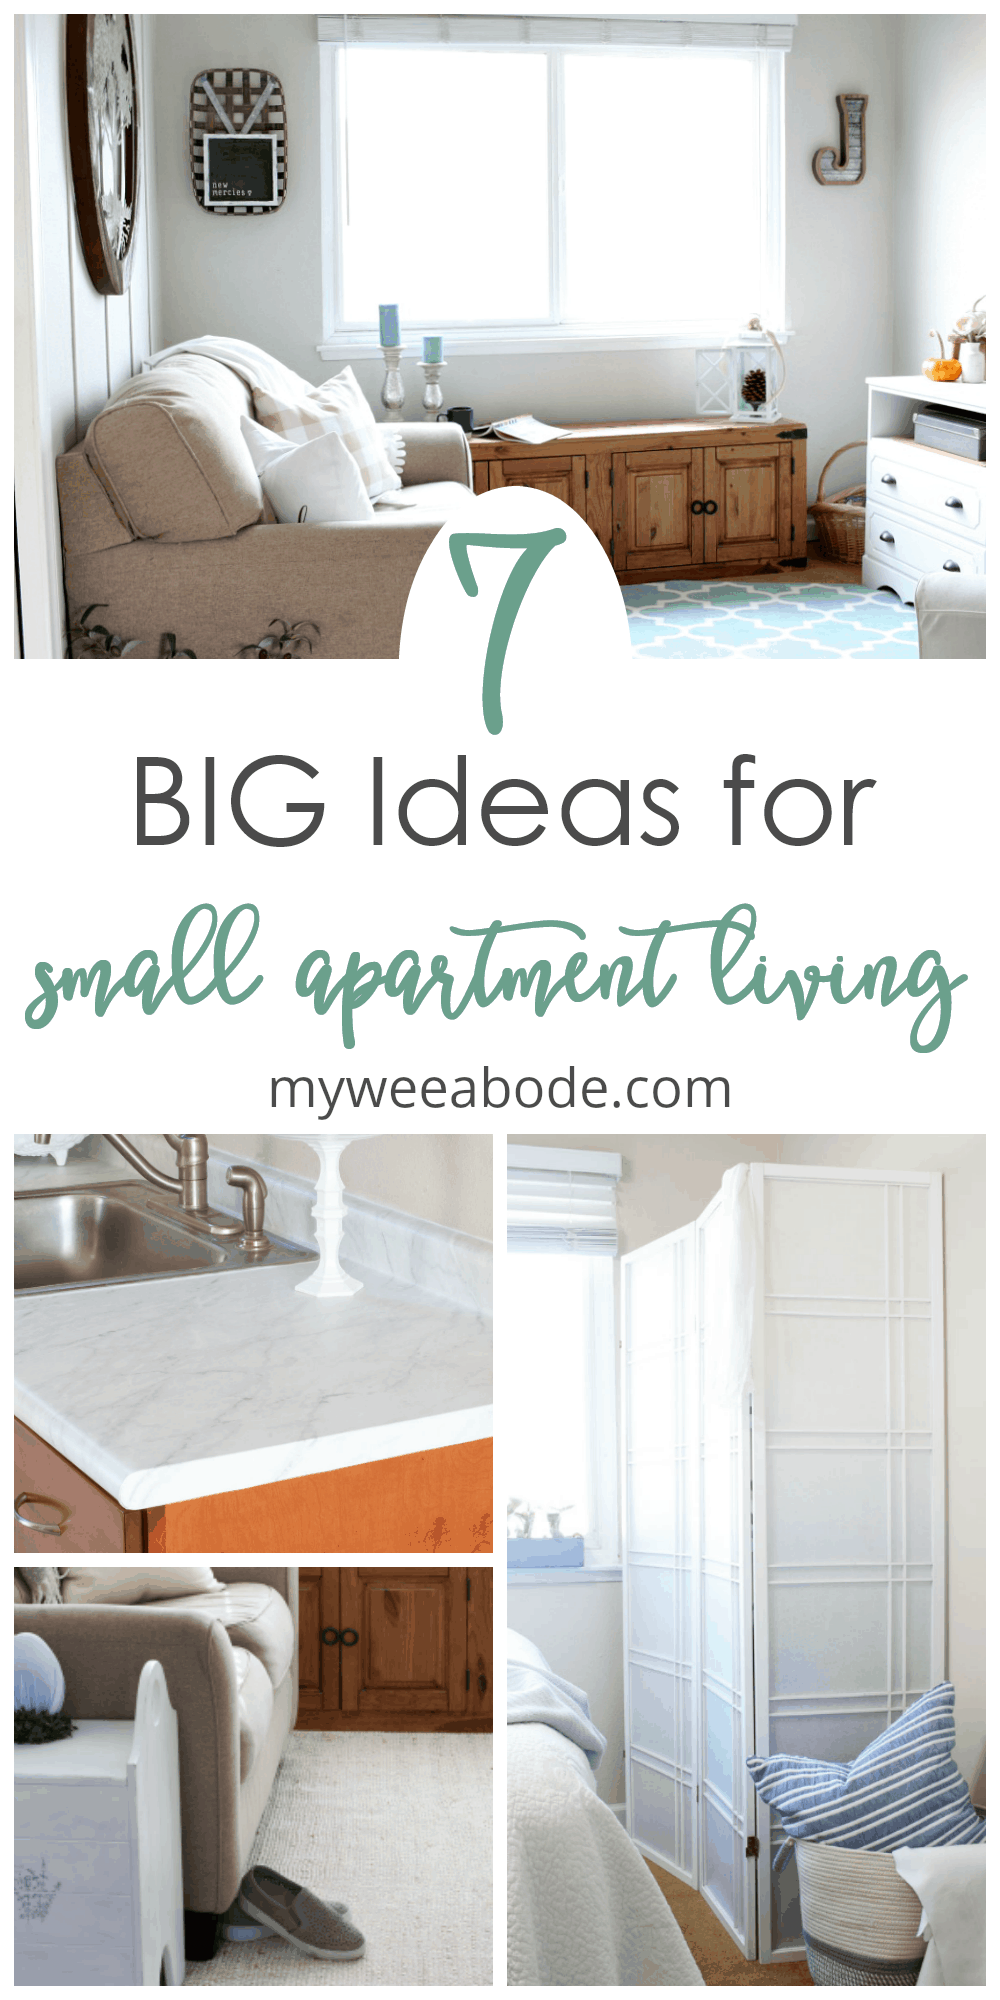 photos of small apartment projects and decor